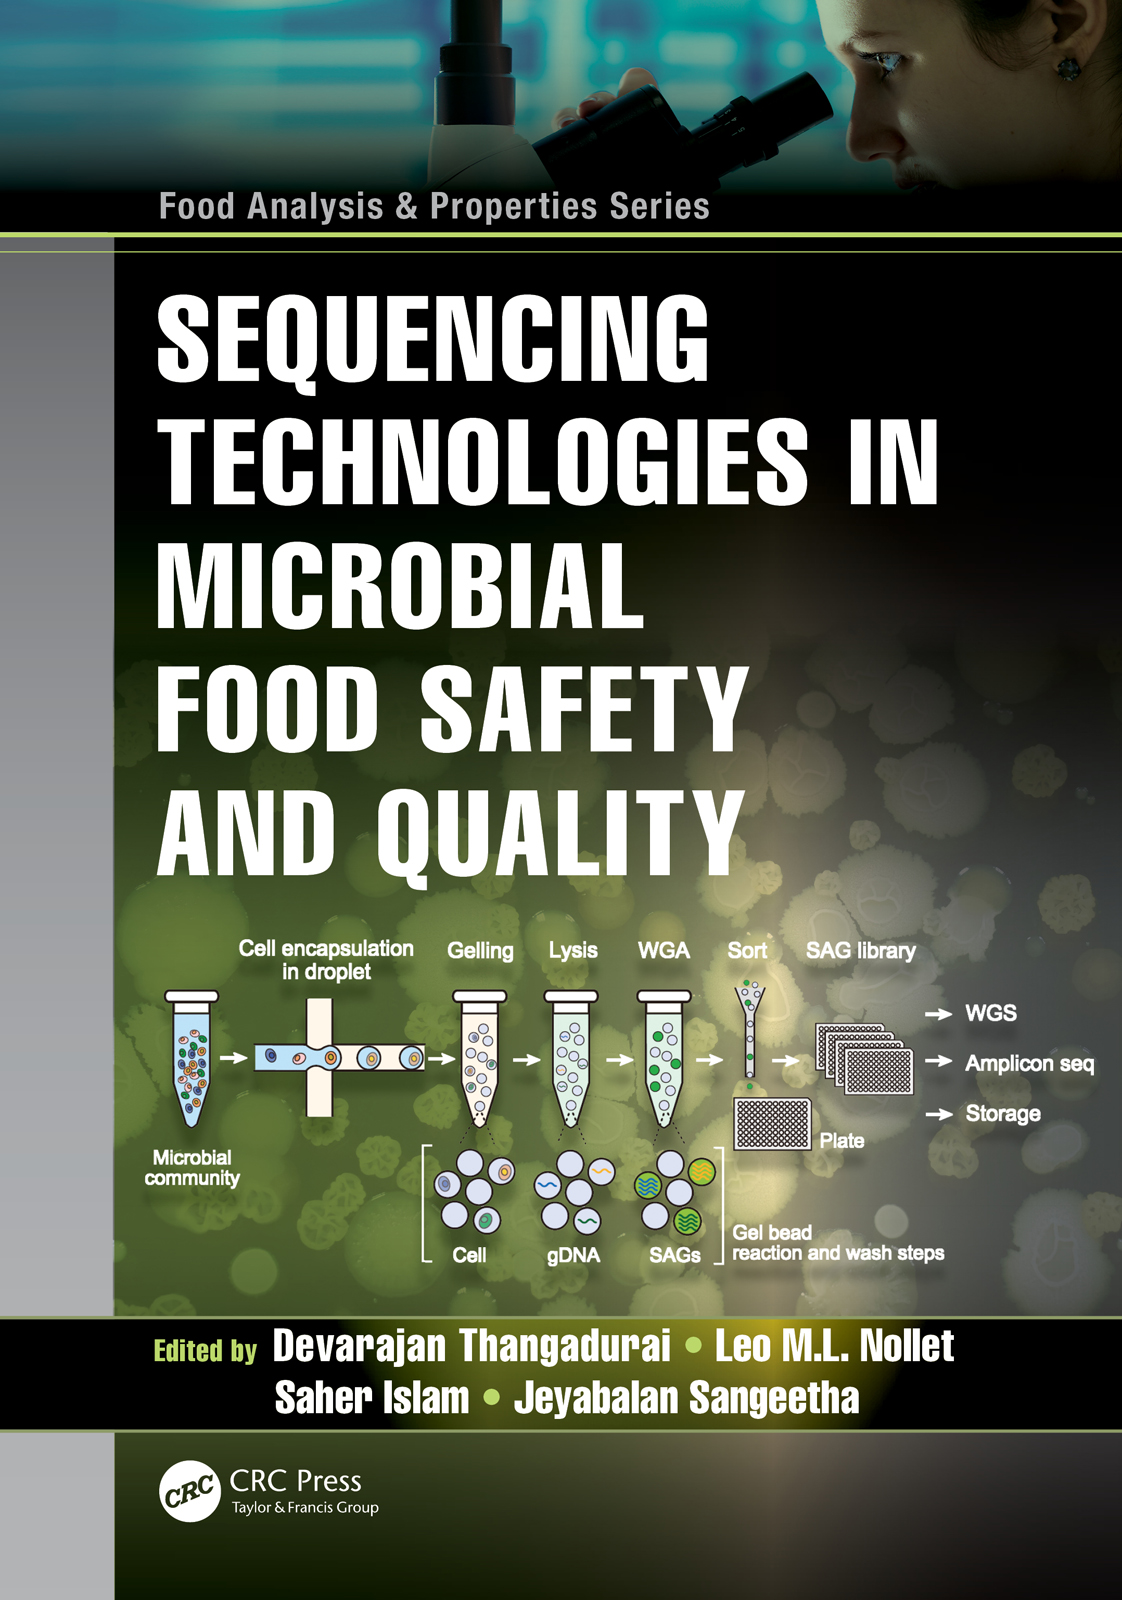 Sequencing Technologies in Microbial Food Safety and Quality